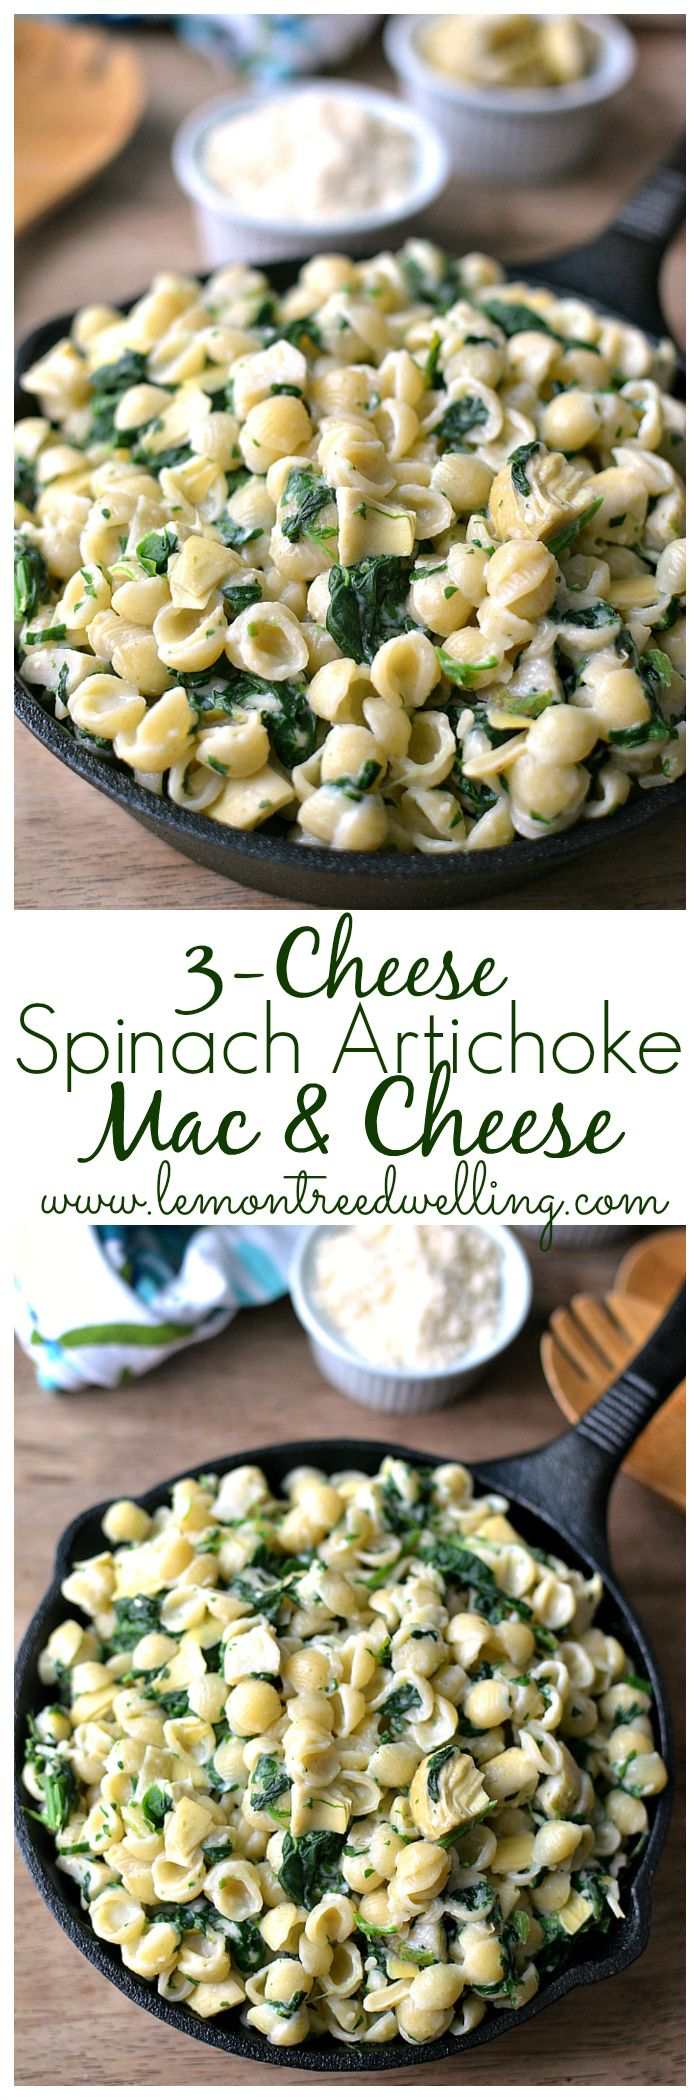 3-Cheese Spinach Artichoke Mac & Cheese - what a great weeknight dinner idea!